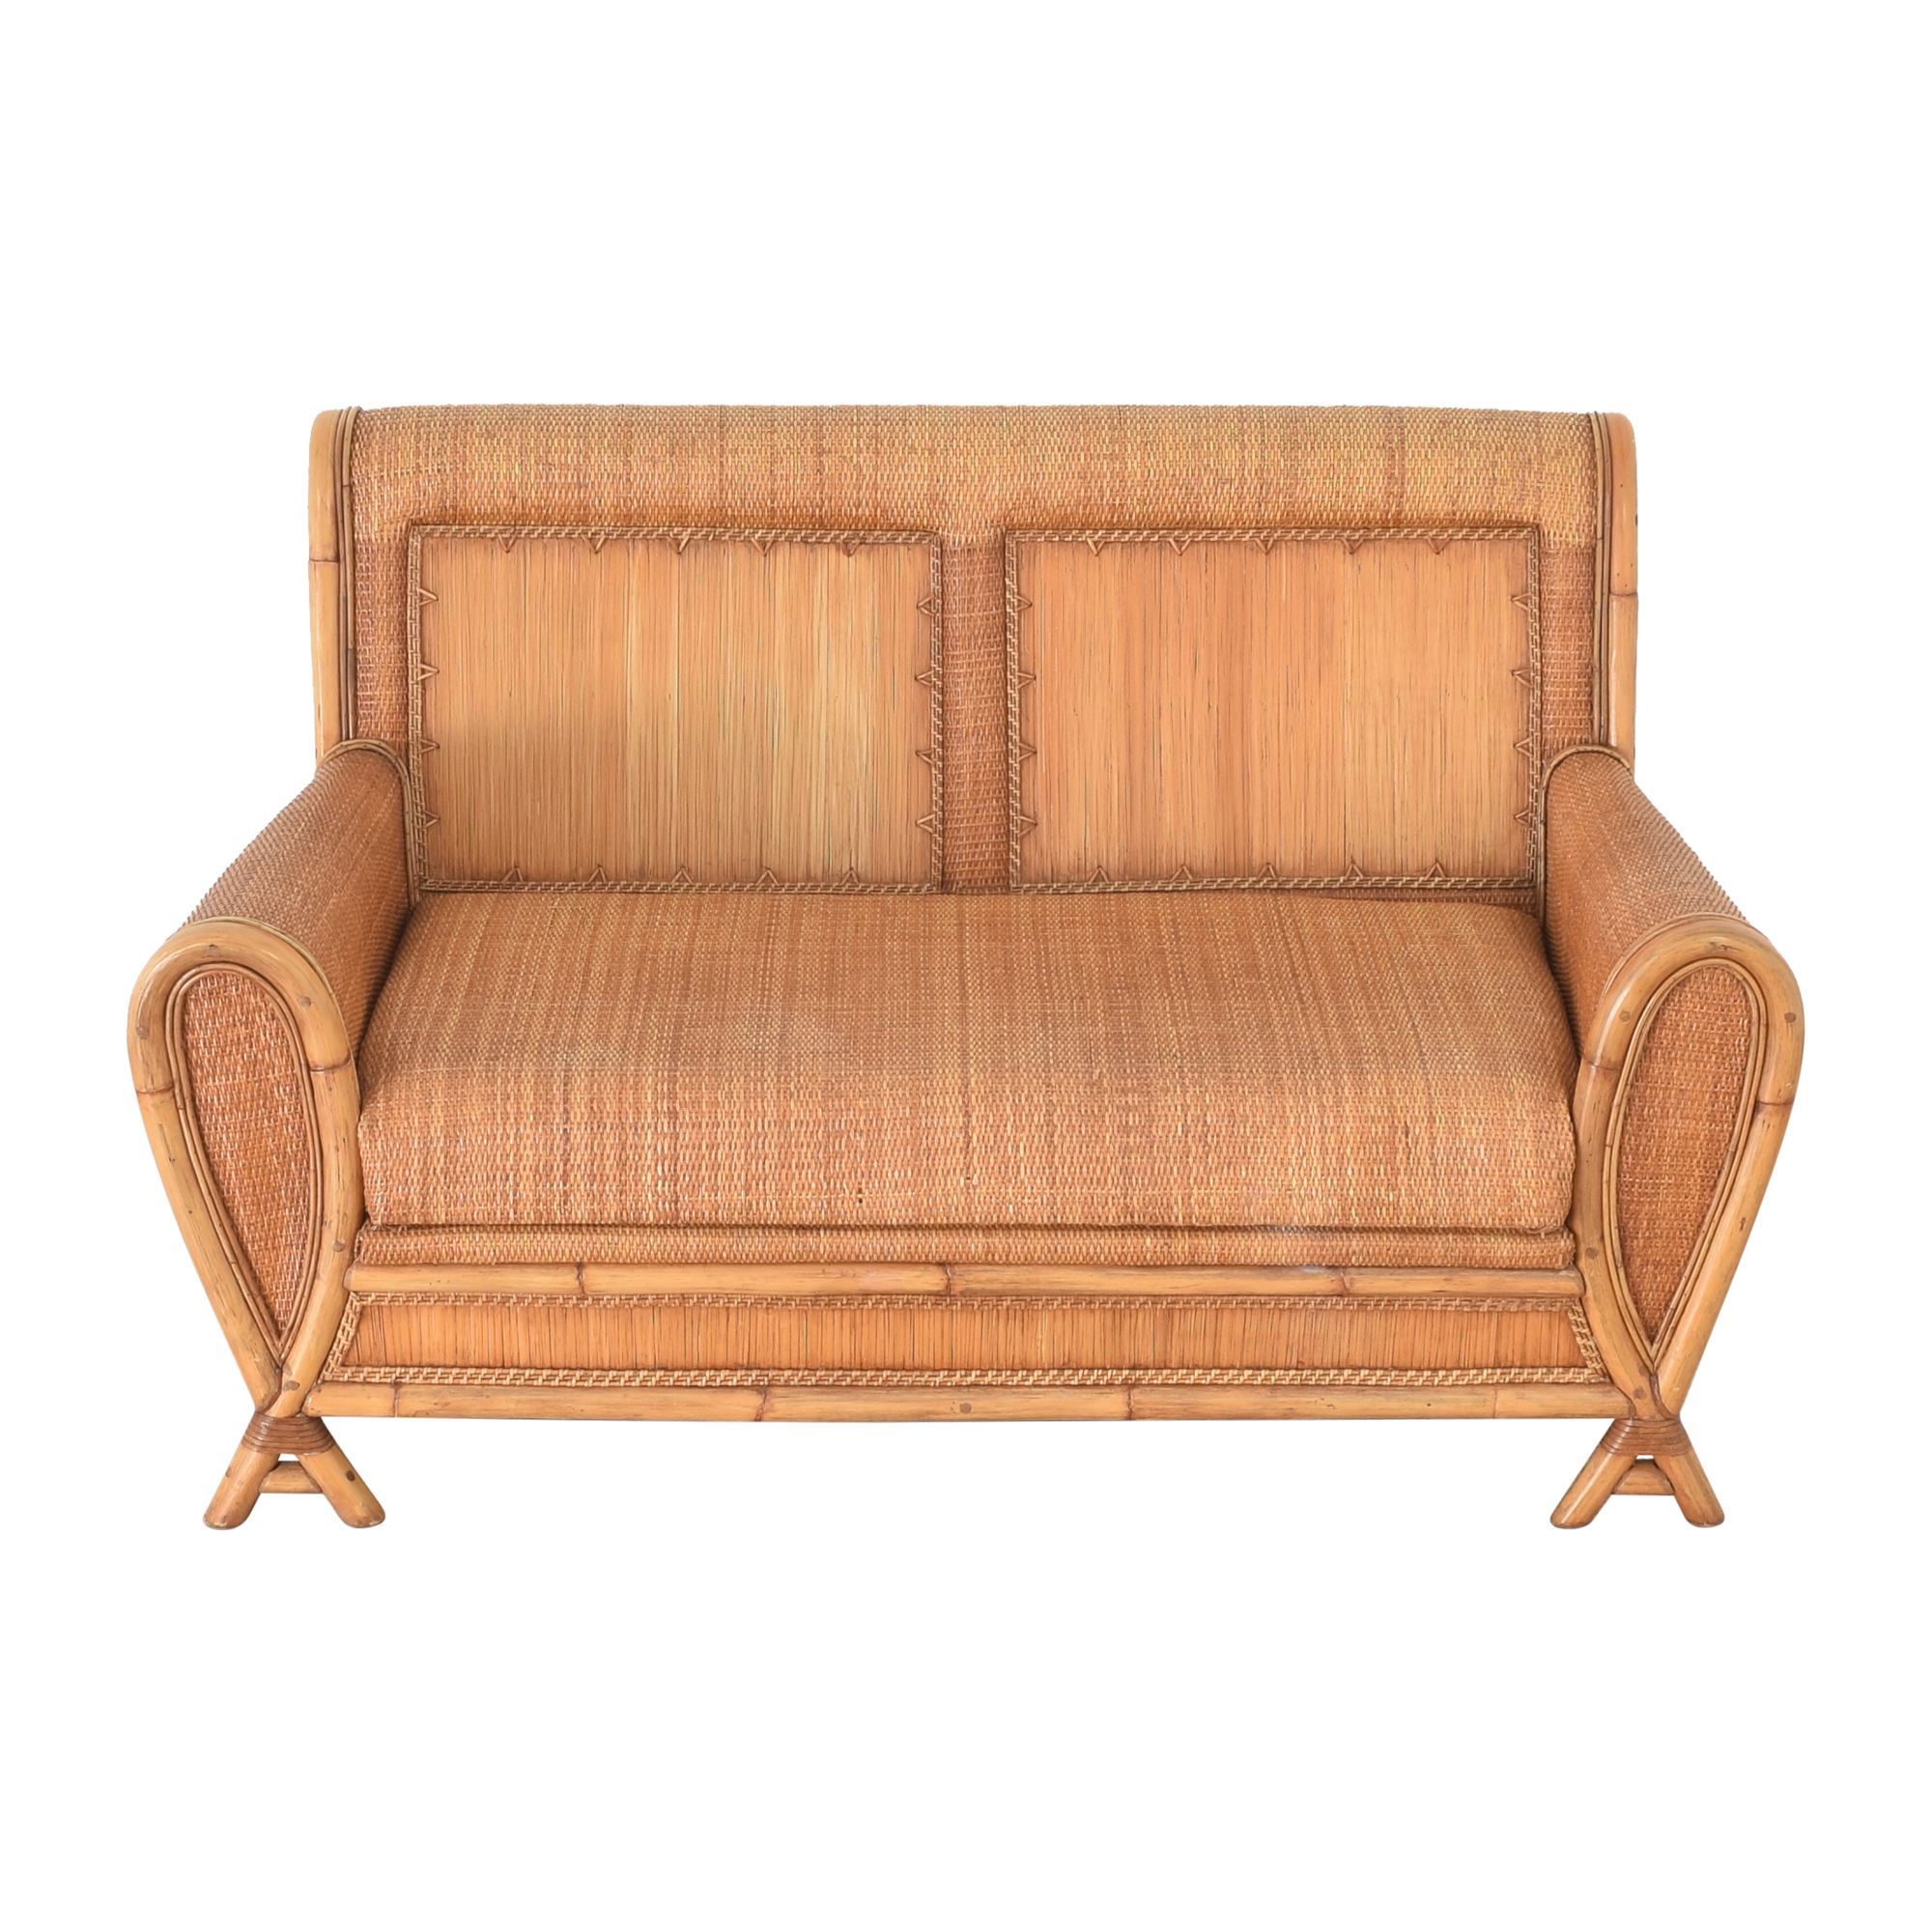 Balinese Bench-Style Loveseat nyc